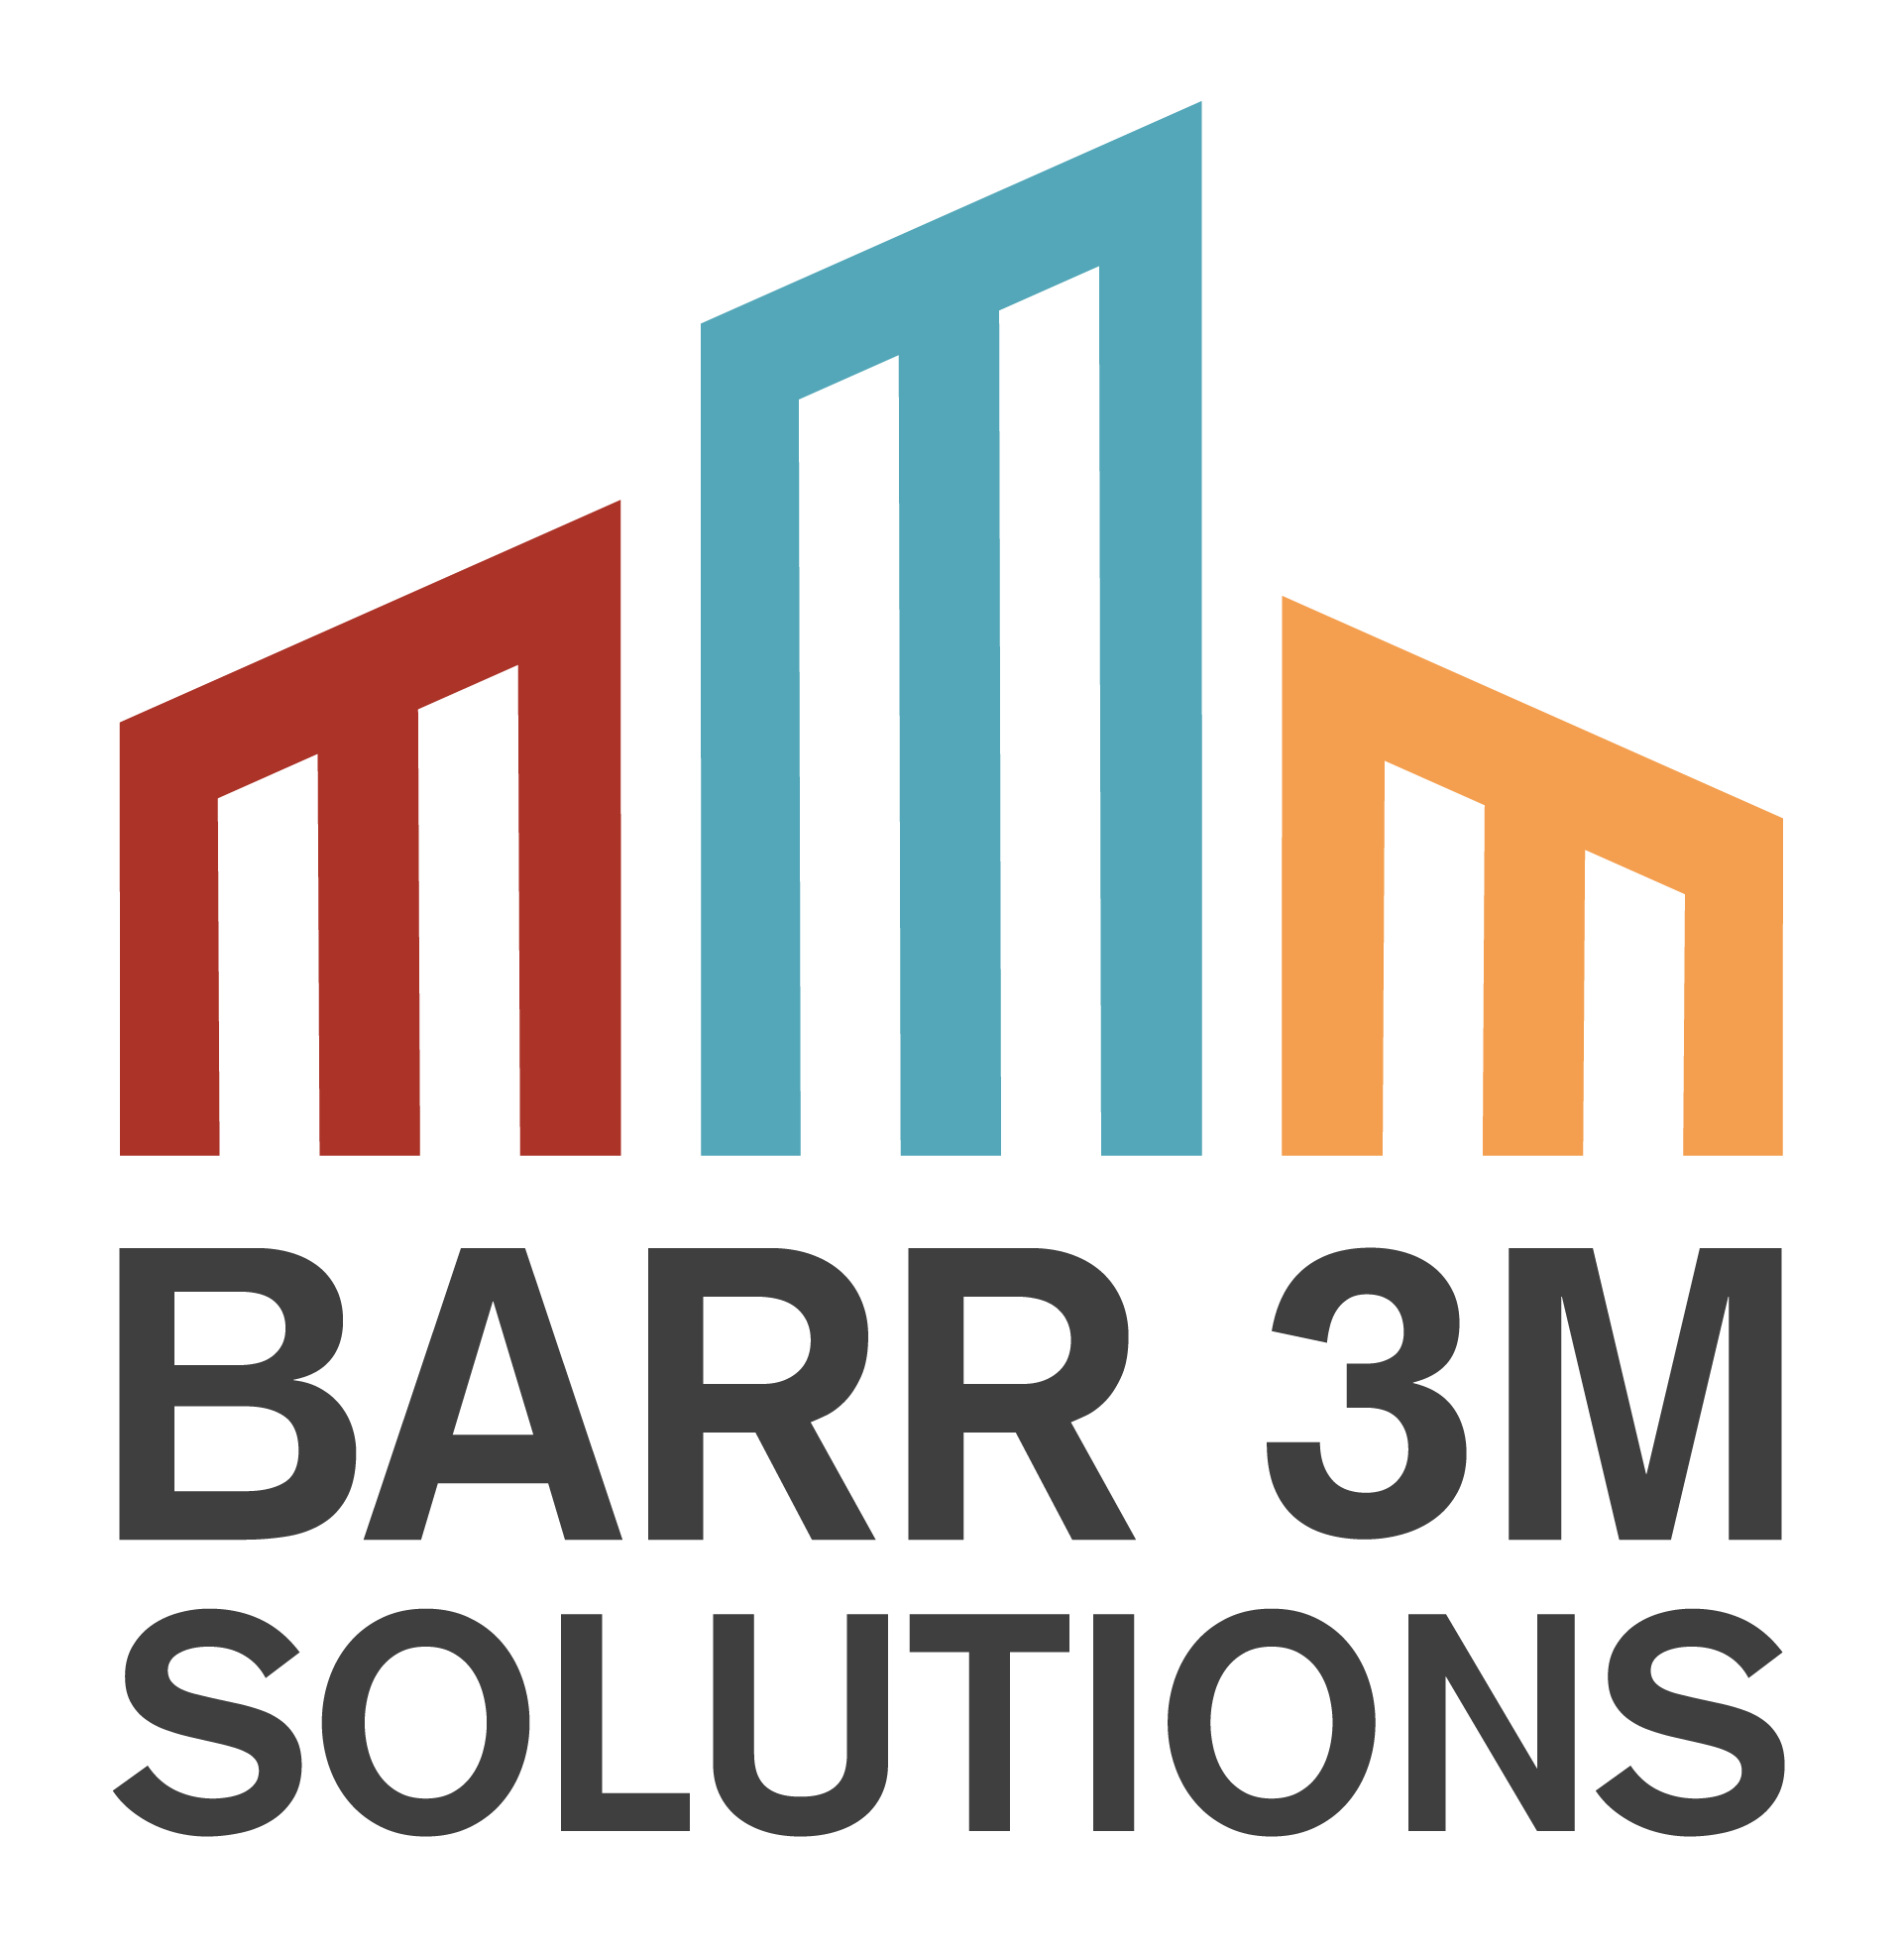 Barr 3M Solutions